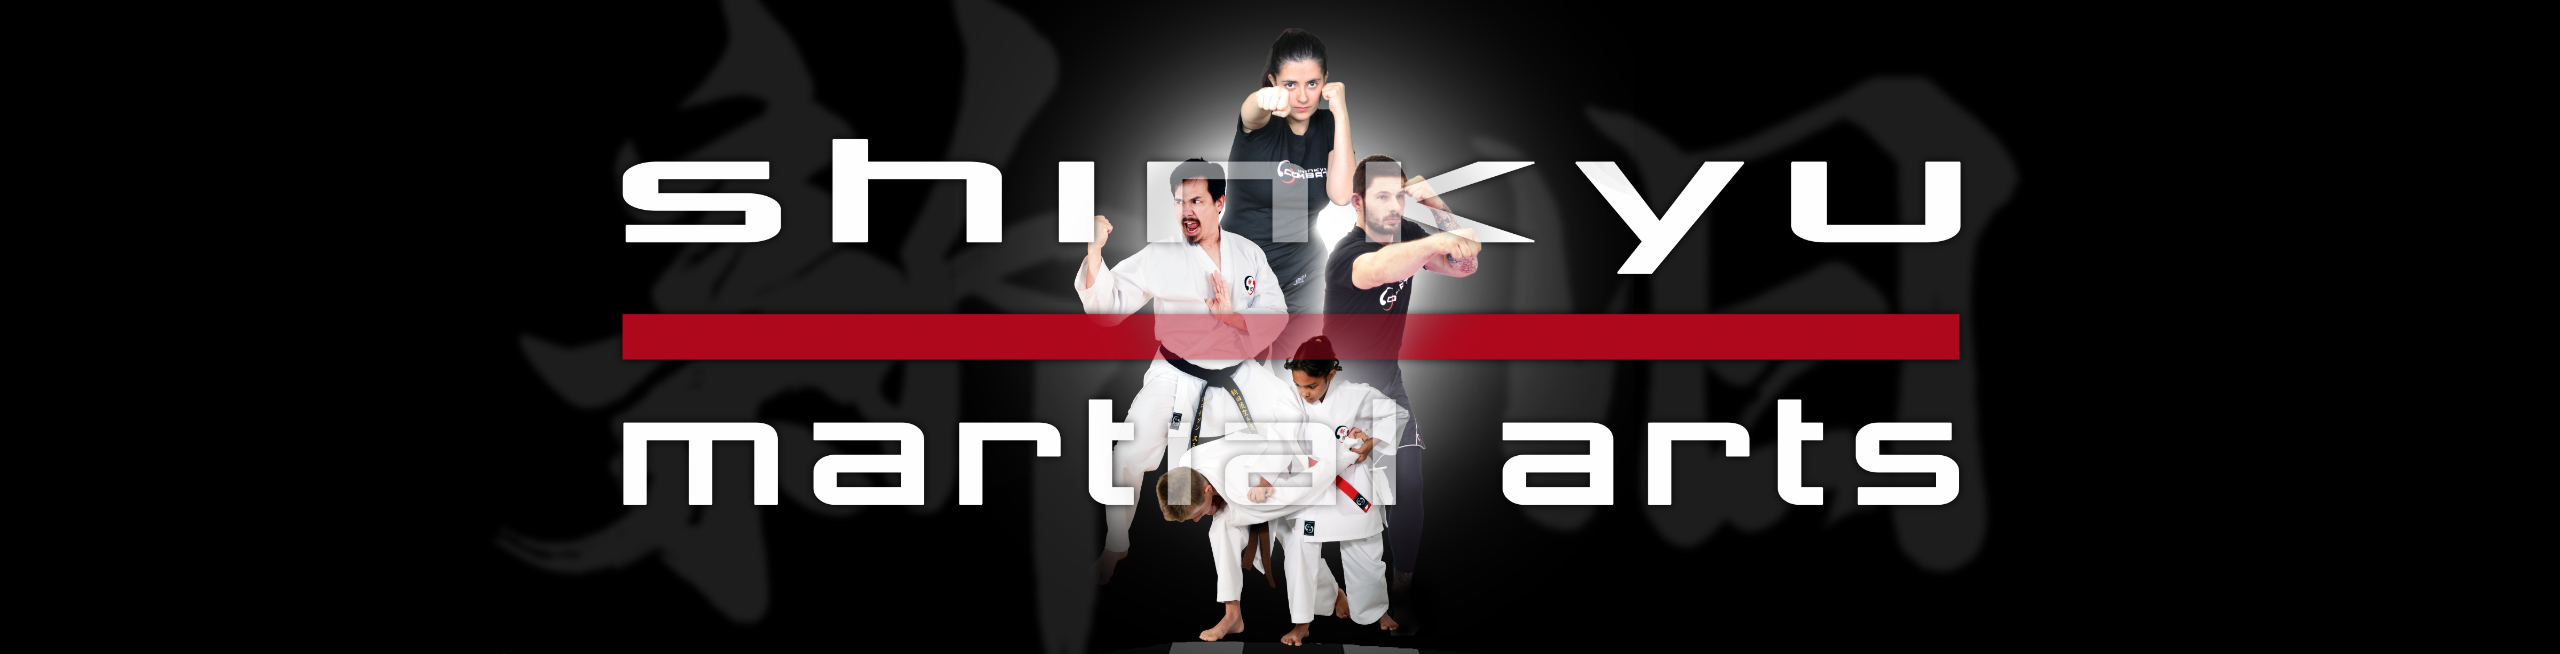 martial arts website slider